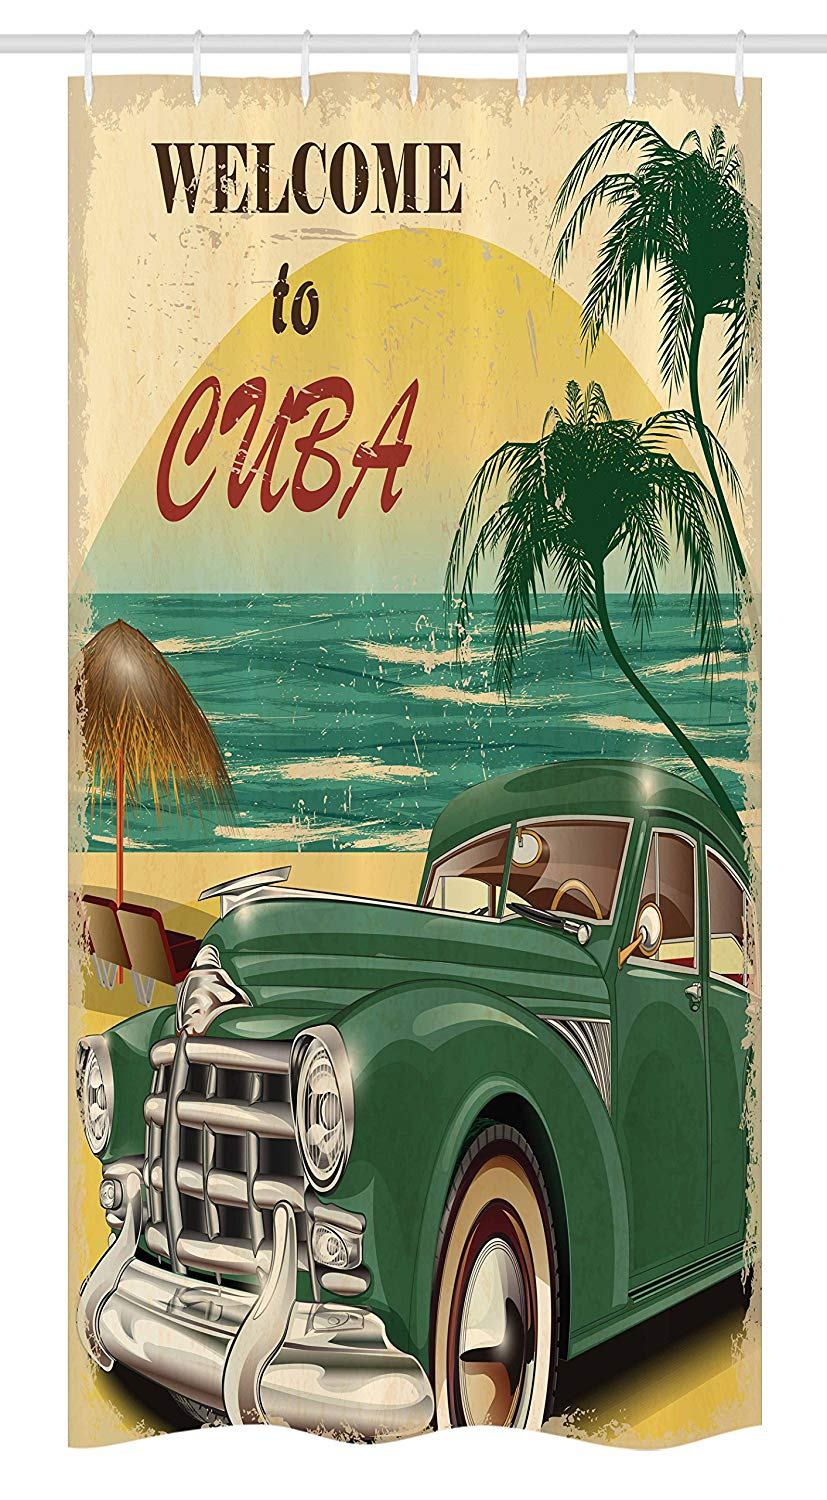 Ambesonne Retro Stall Shower Curtain, Nostalgic Welcome to Cuba Artsy Print with Classic Car Beach Ocean Palm Trees, Fabric Bathroom Decor Set with Hooks, 36 W x 72 L inches, Green Cream Yellow